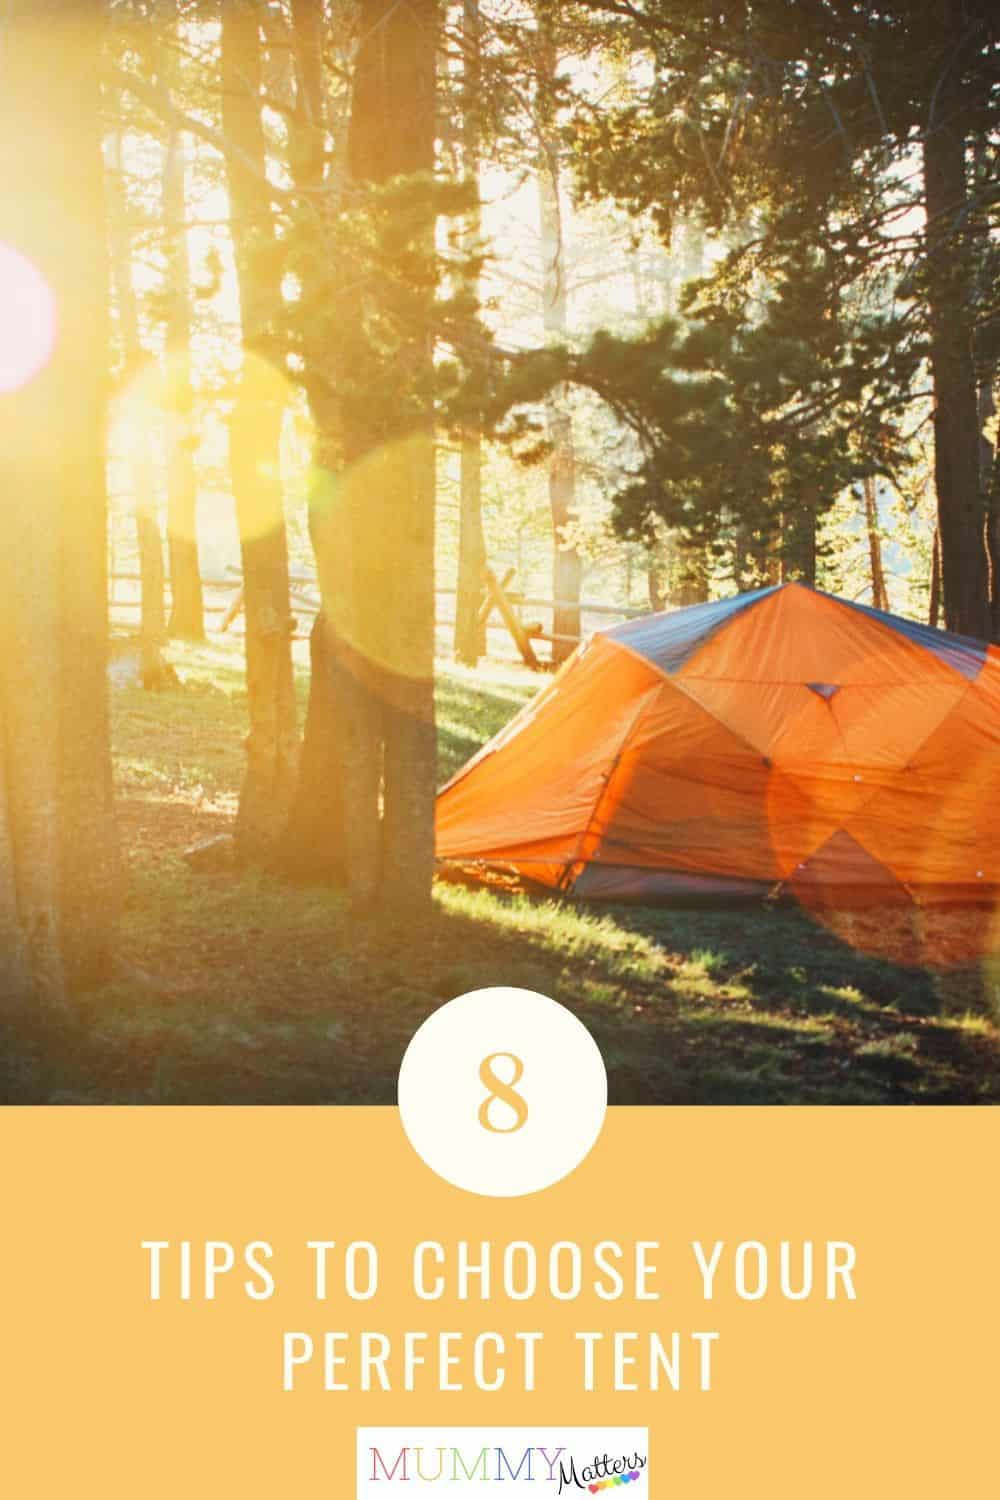 If you have decided to give camping a go then it's time to choose a tent. Finding the correct size can mean the success or failure of a camping trip.